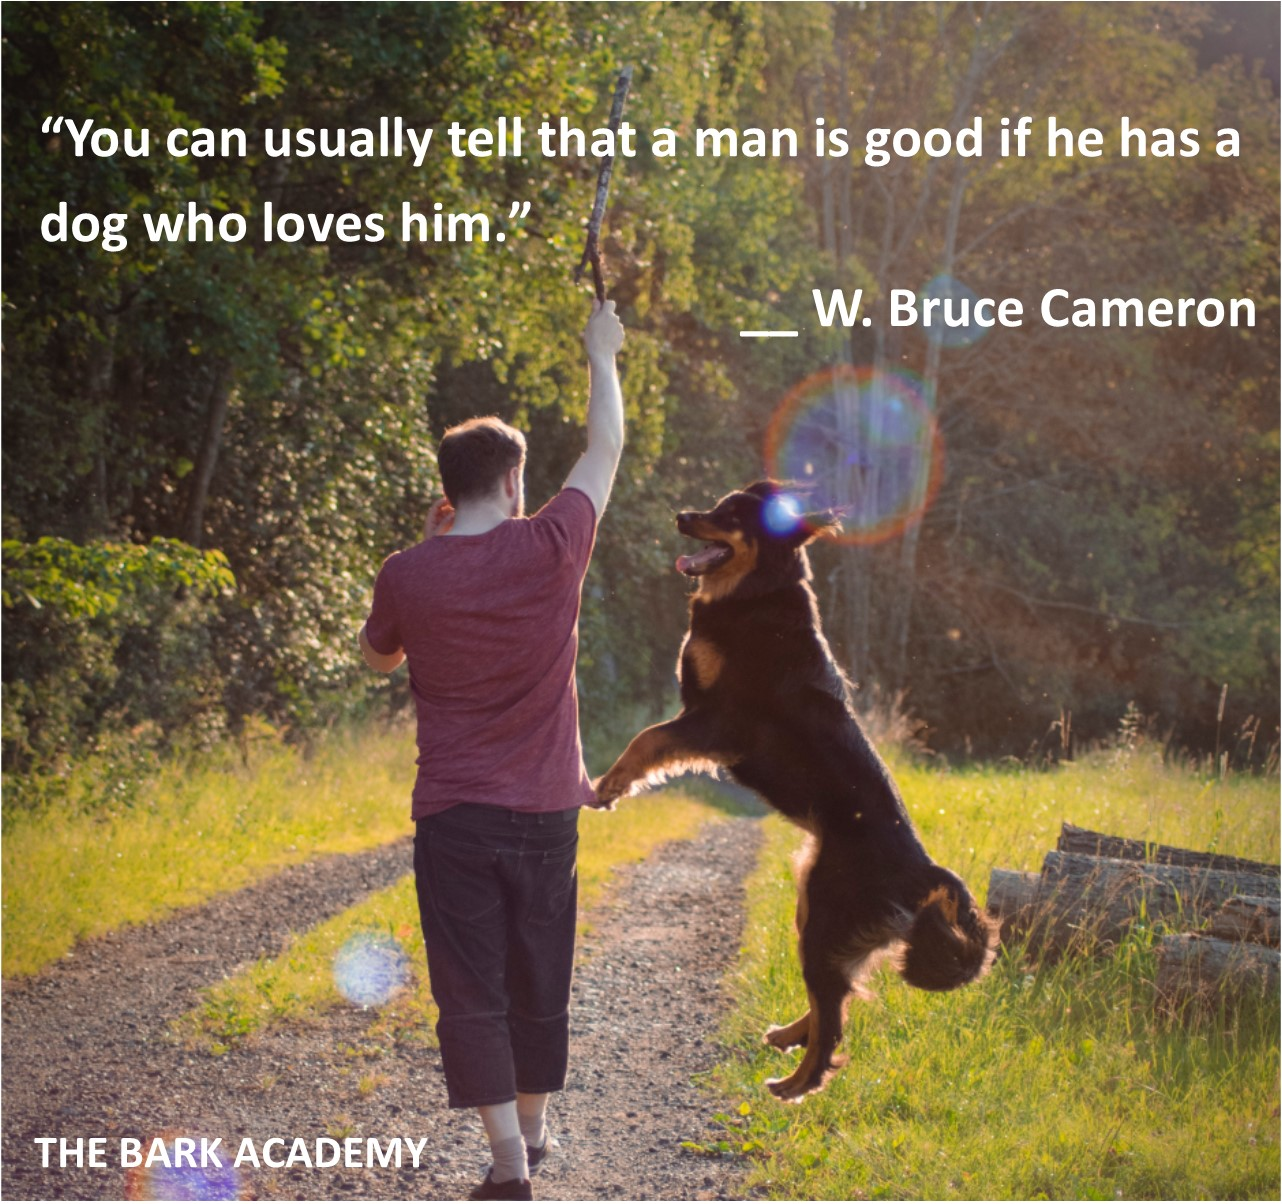 Shop at The Bark Academy